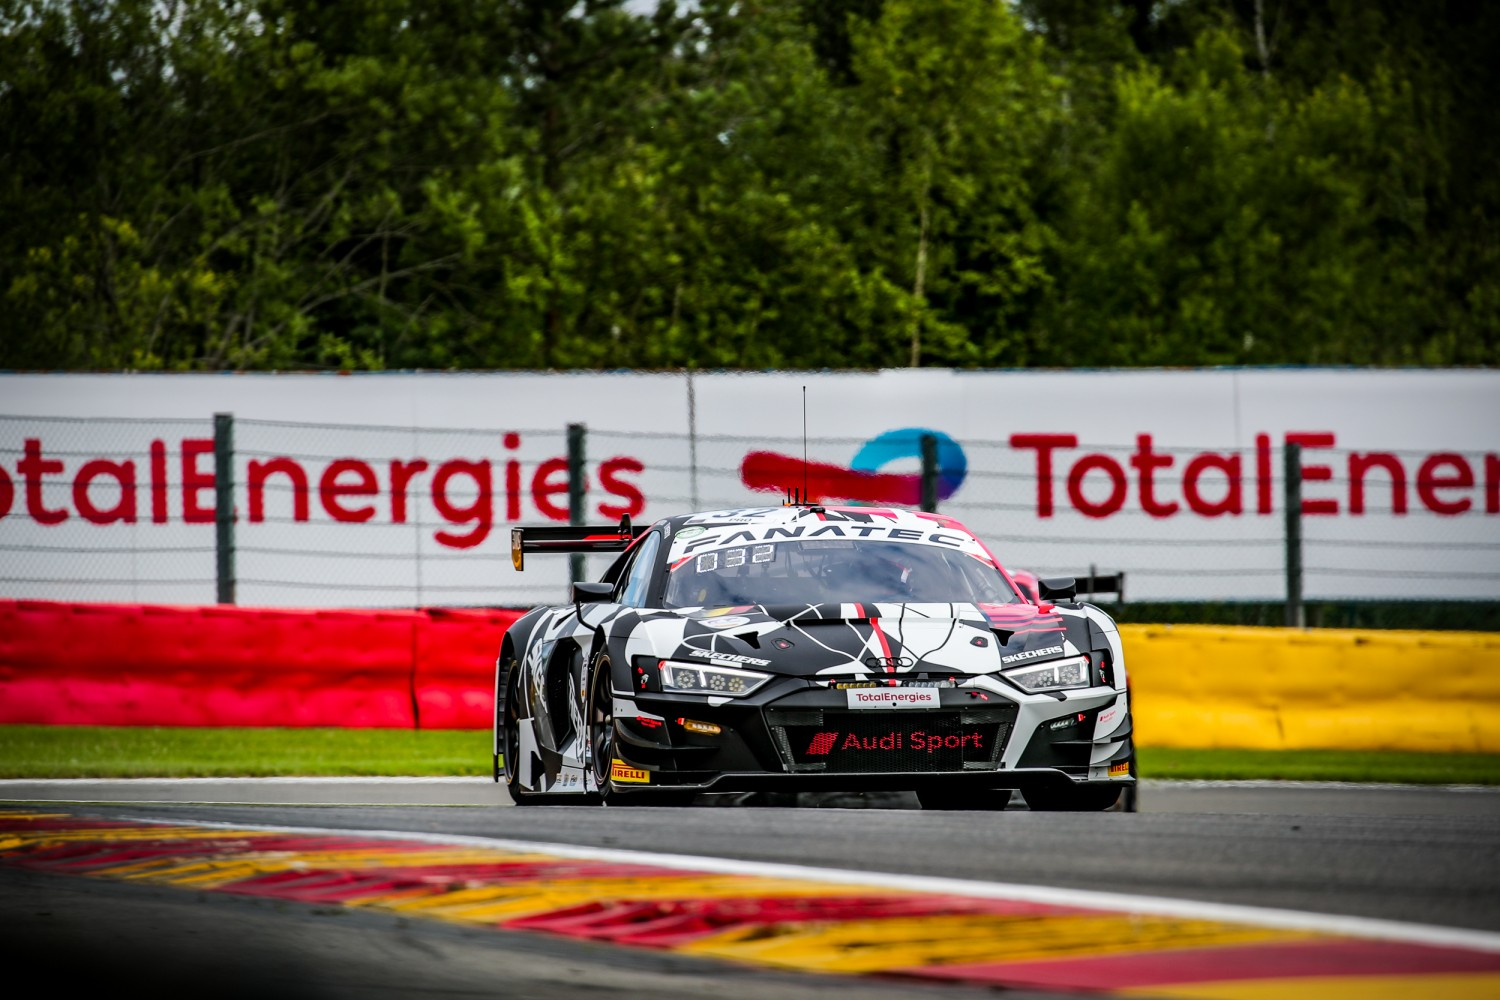 Audi Sport Team WRT tops free practice as 2021 TotalEnergies 24 Hours of Spa comes to life